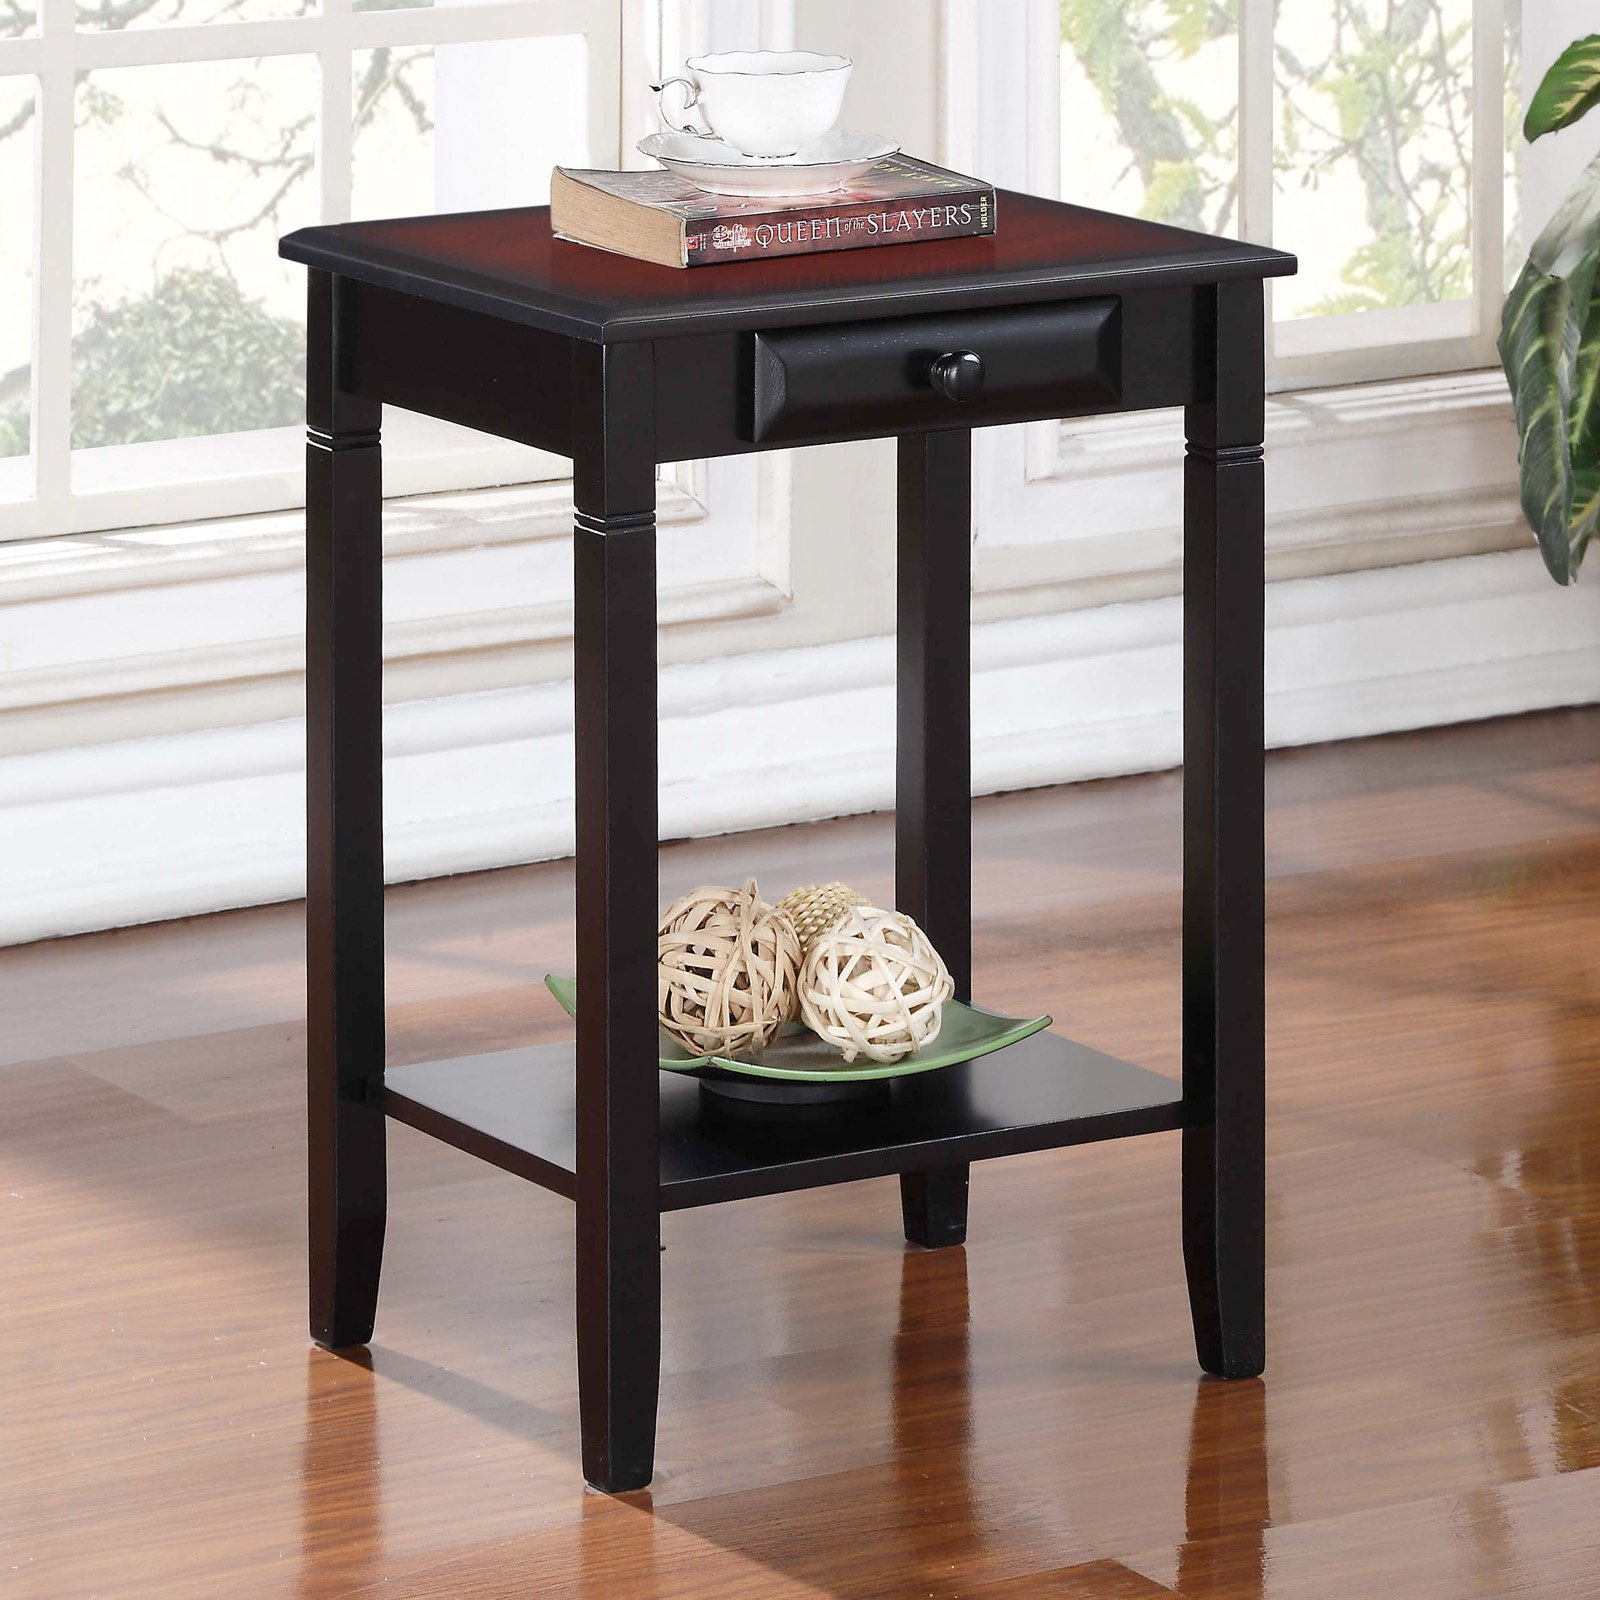 Linon Home Decor Camden Accent Table, Black Cherry